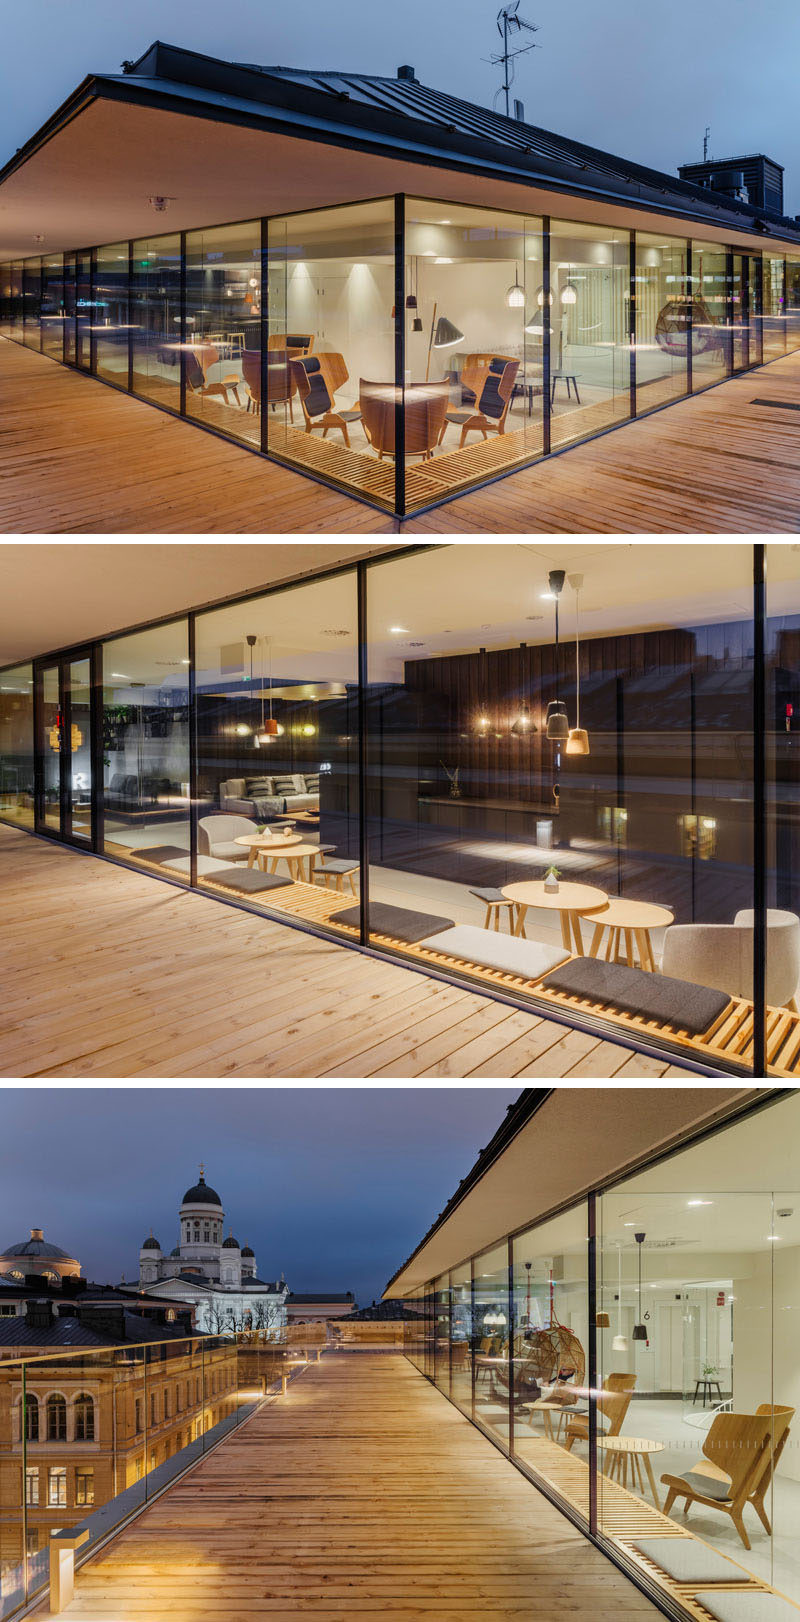 This modern workplace has a wood bench that wraps around the interior at the same height as the deck, providing a place to relax and enjoy the view from inside. #Workplace #OfficeDesign #Deck #WindowSeat